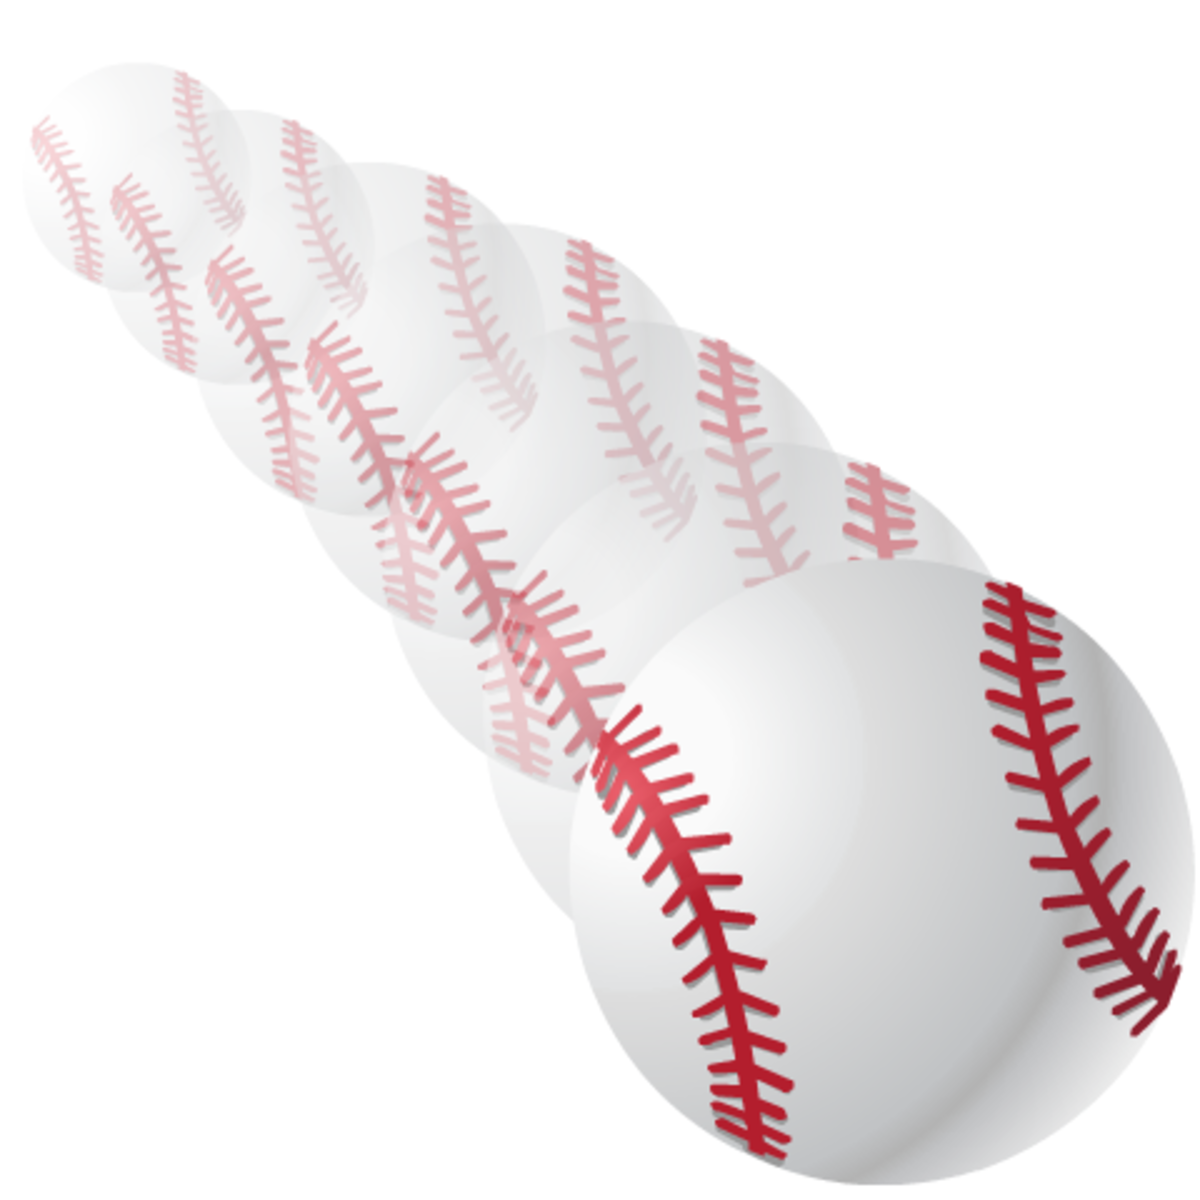 Free Softball and Baseball Clip Art